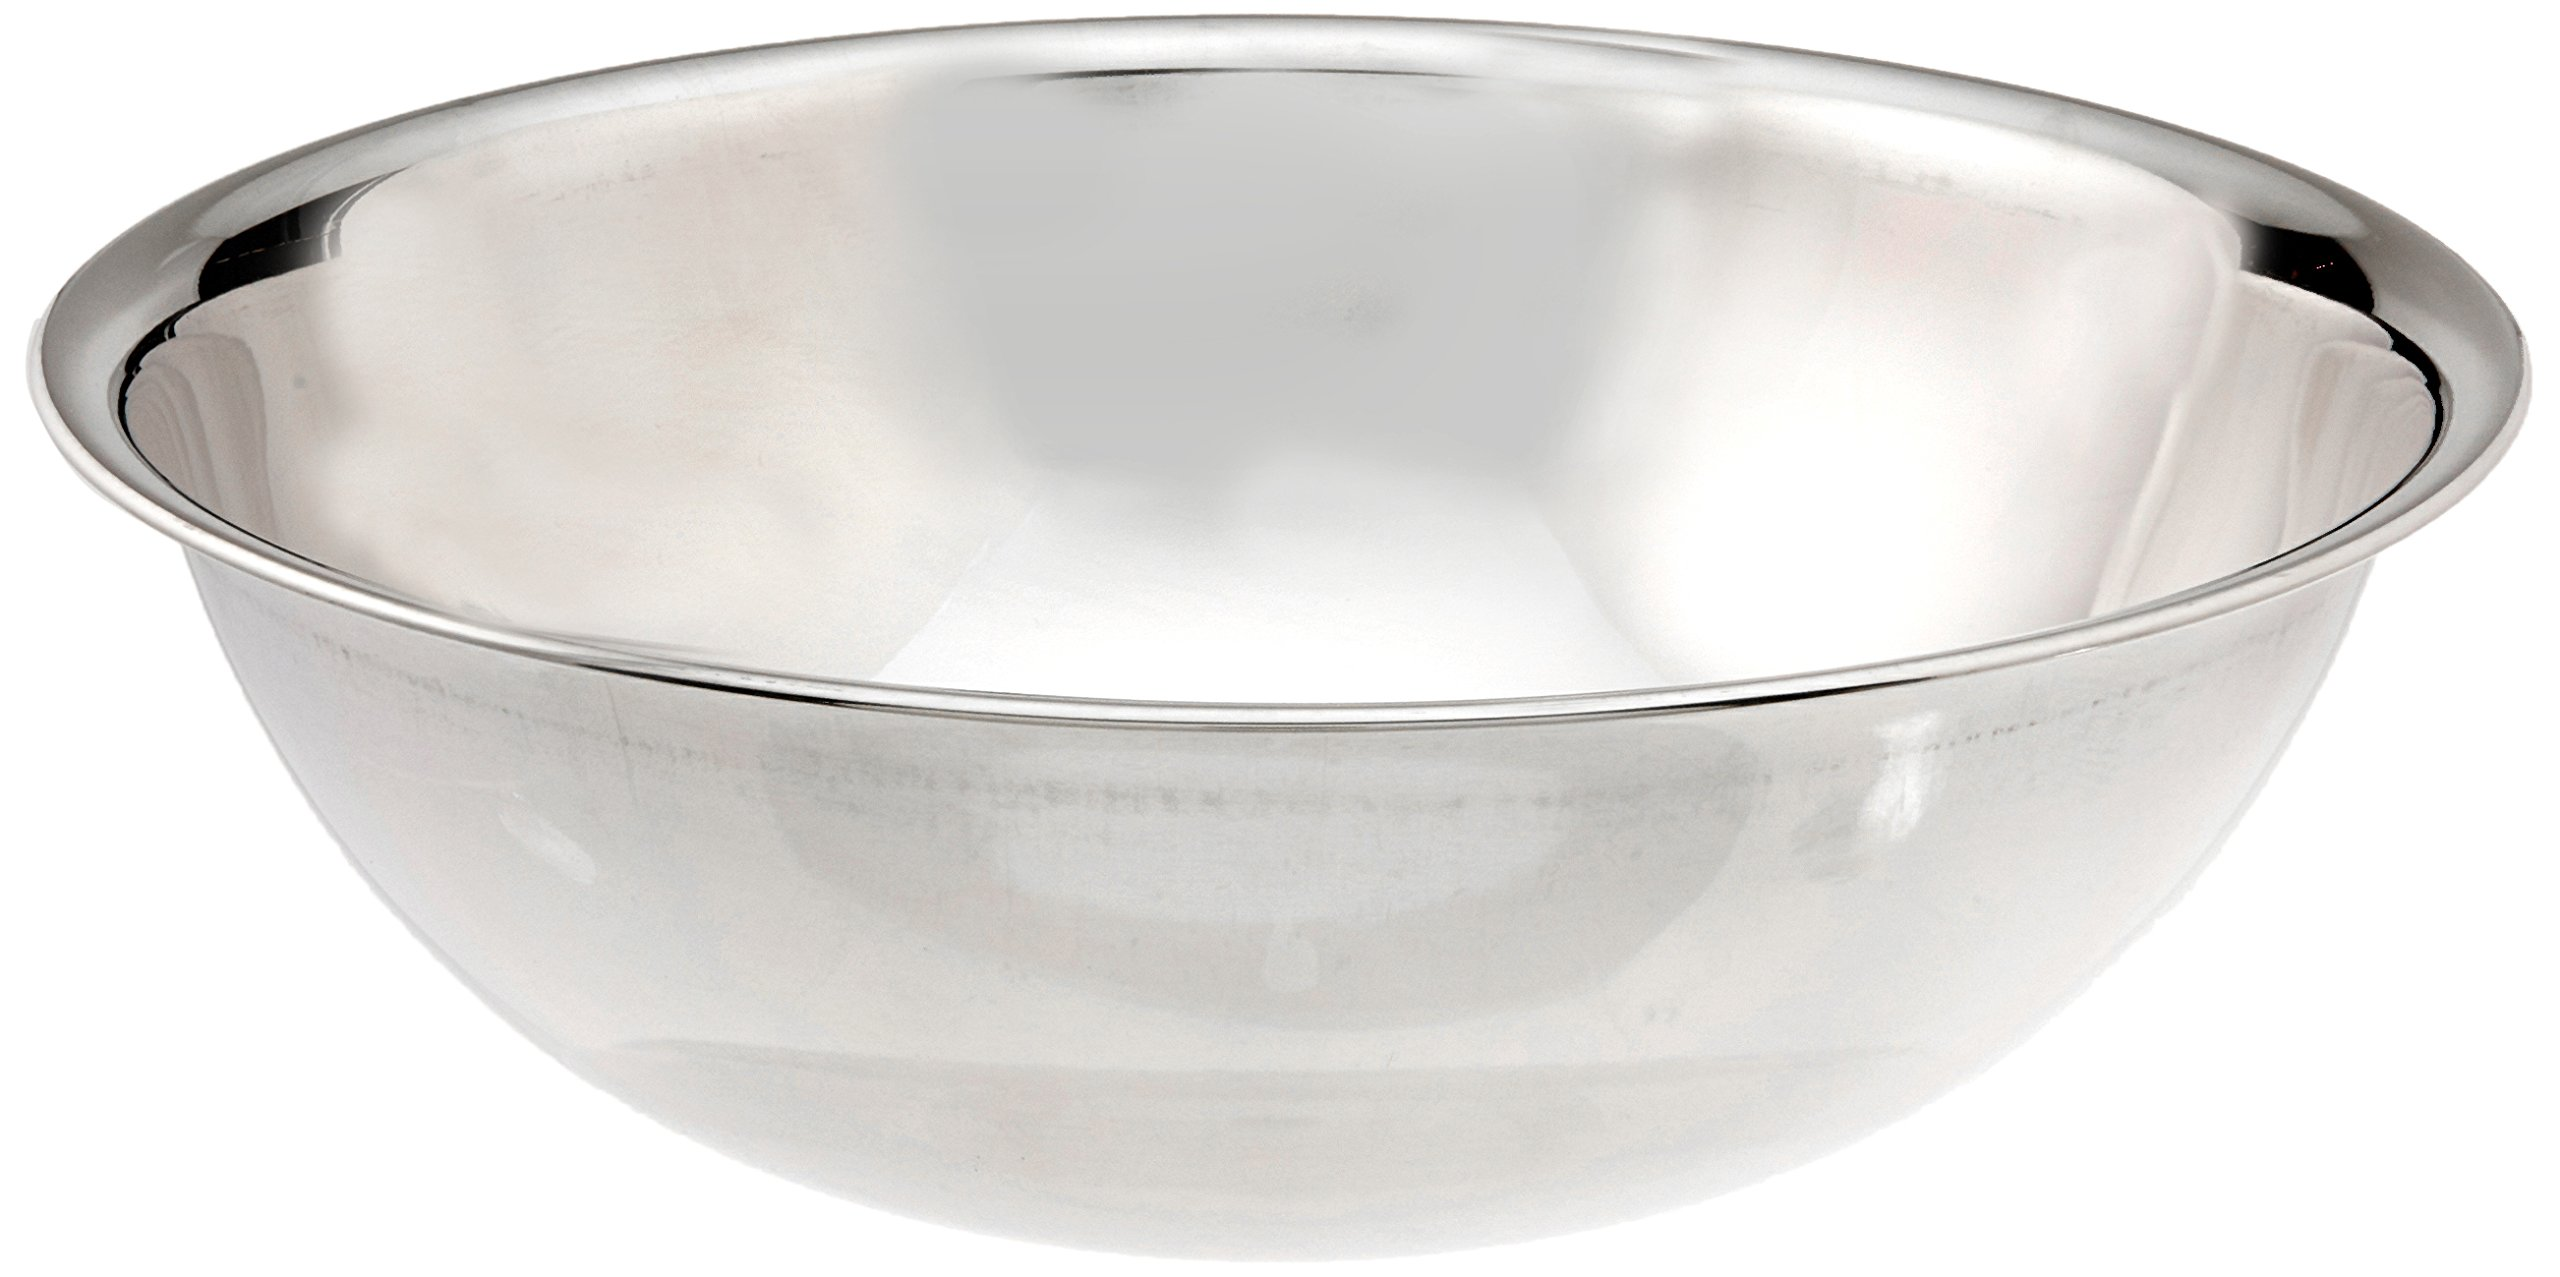 Vollrath 47938 Stainless Steel Economy Mixing Bowl, 8-Quart by Vollrath